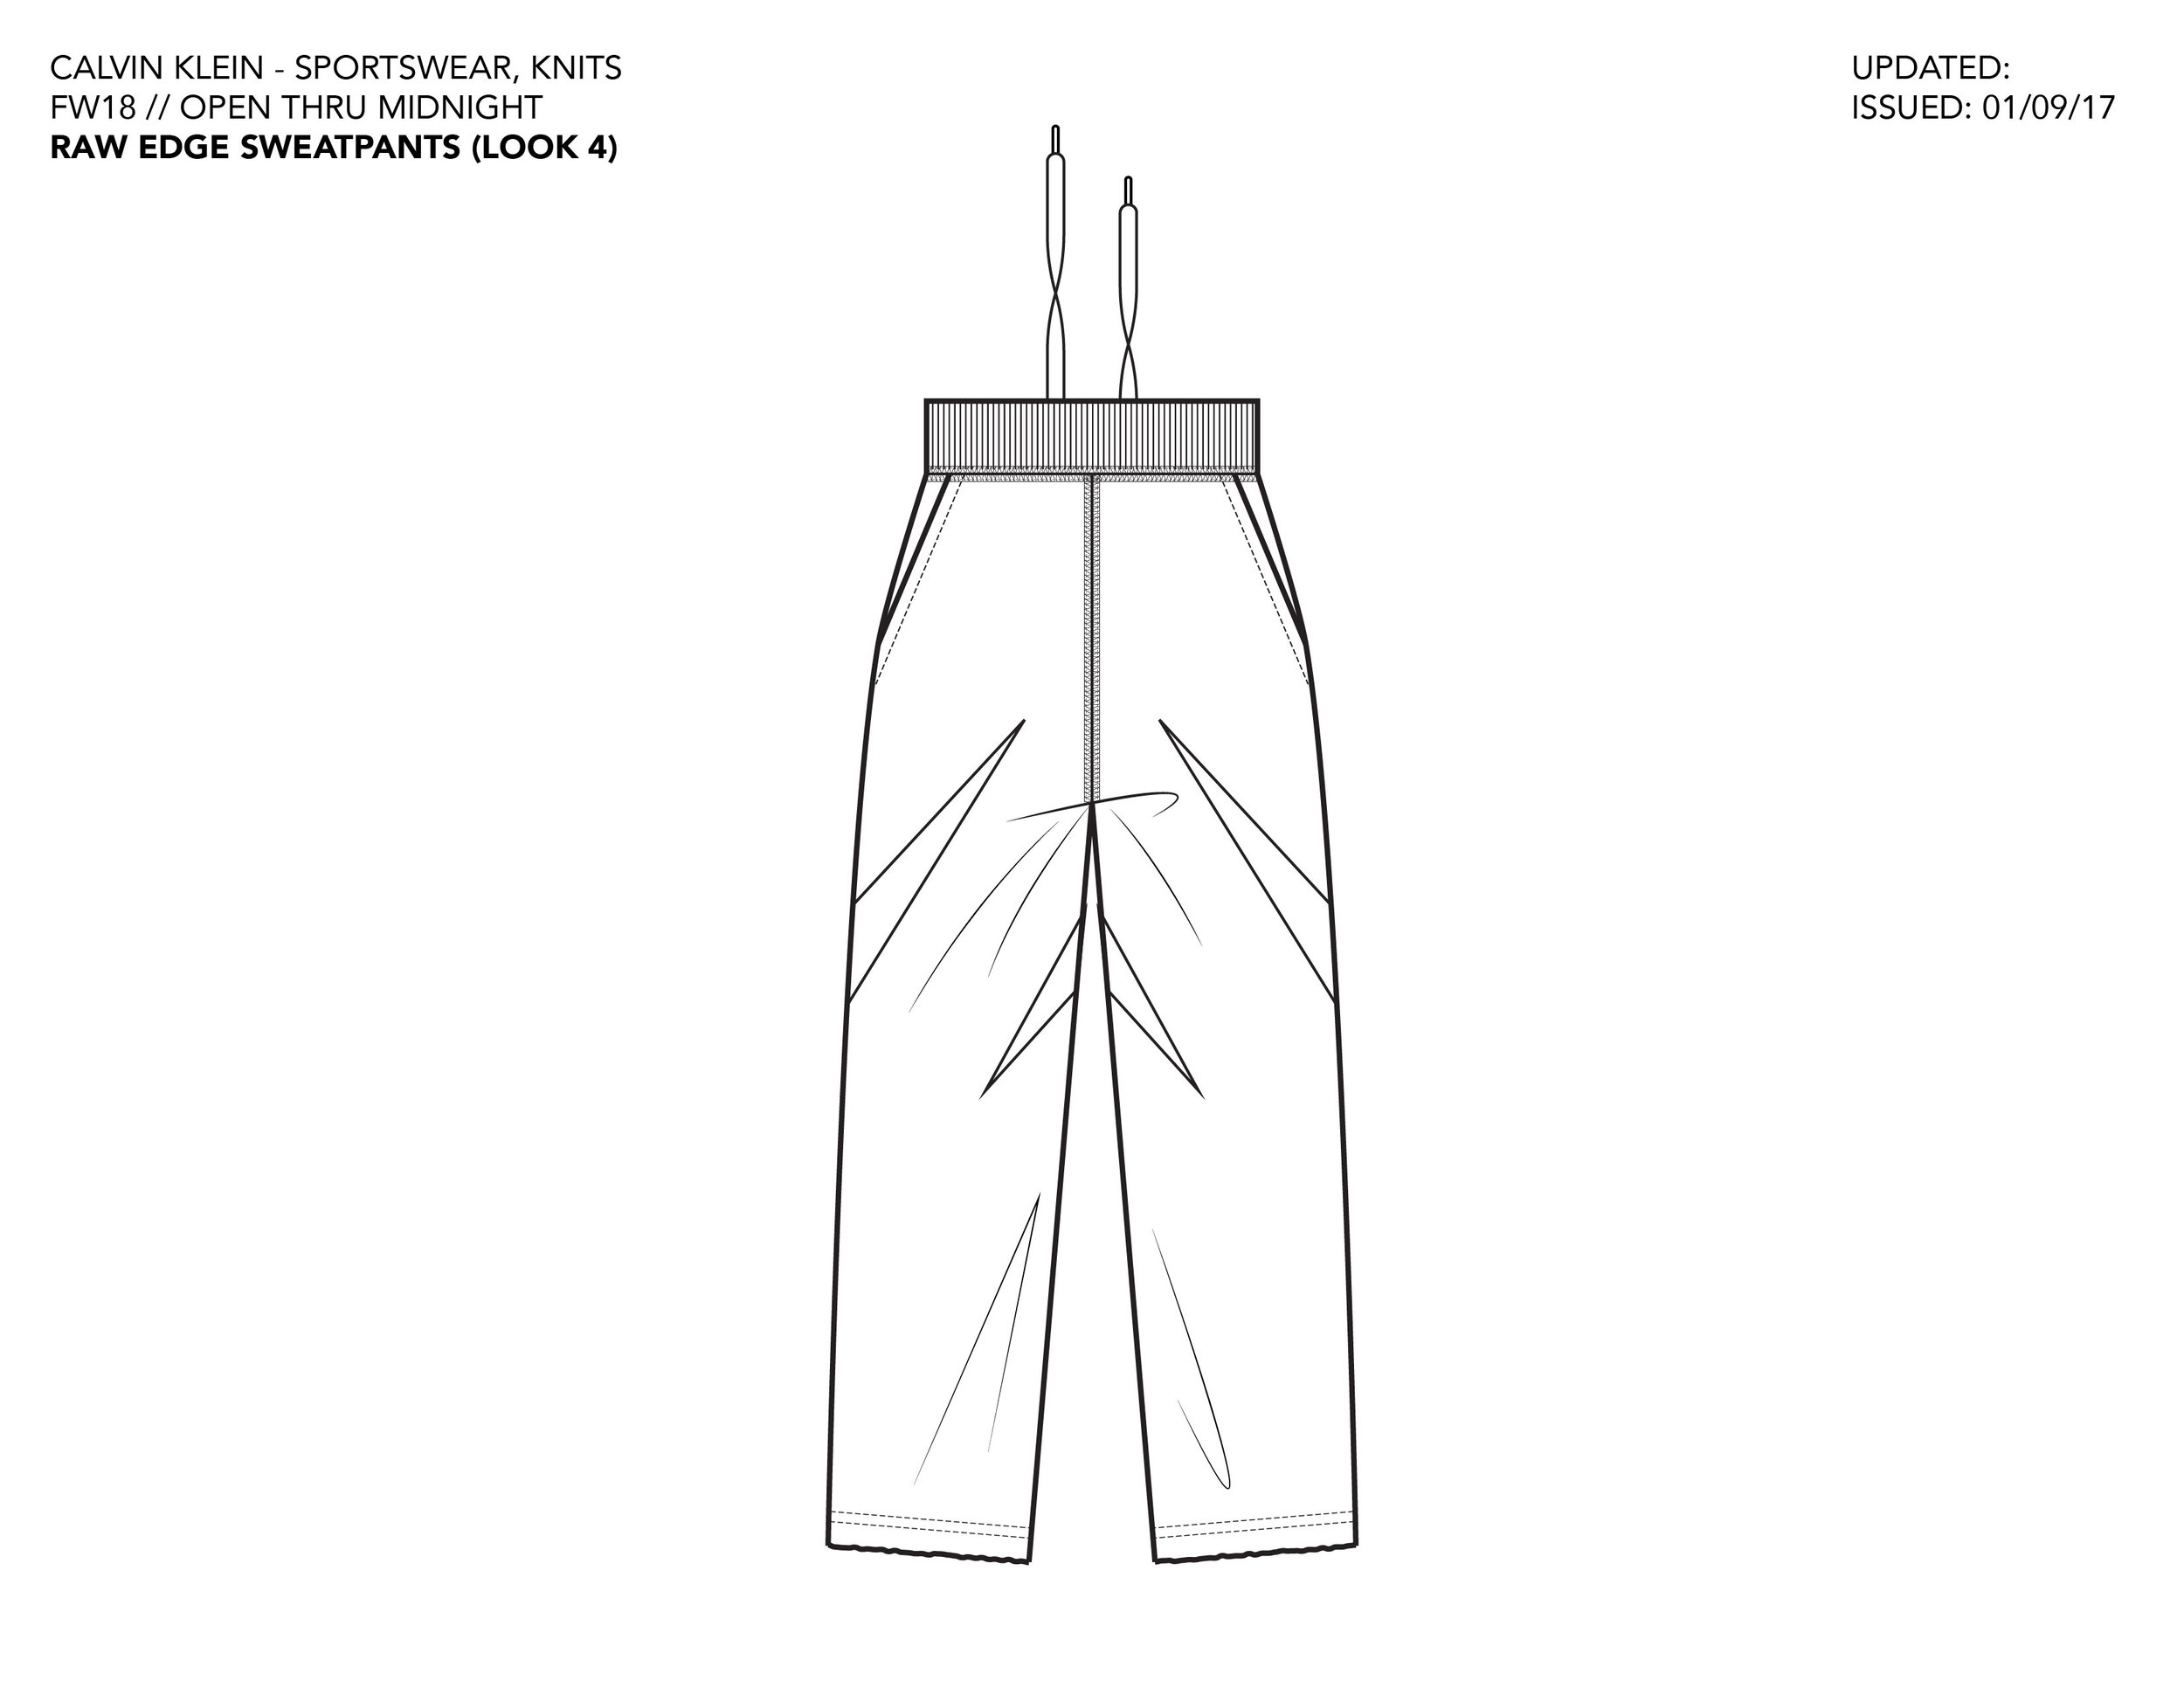 LOOK 4 - RAW EDGE SWEATPANTS.jpg